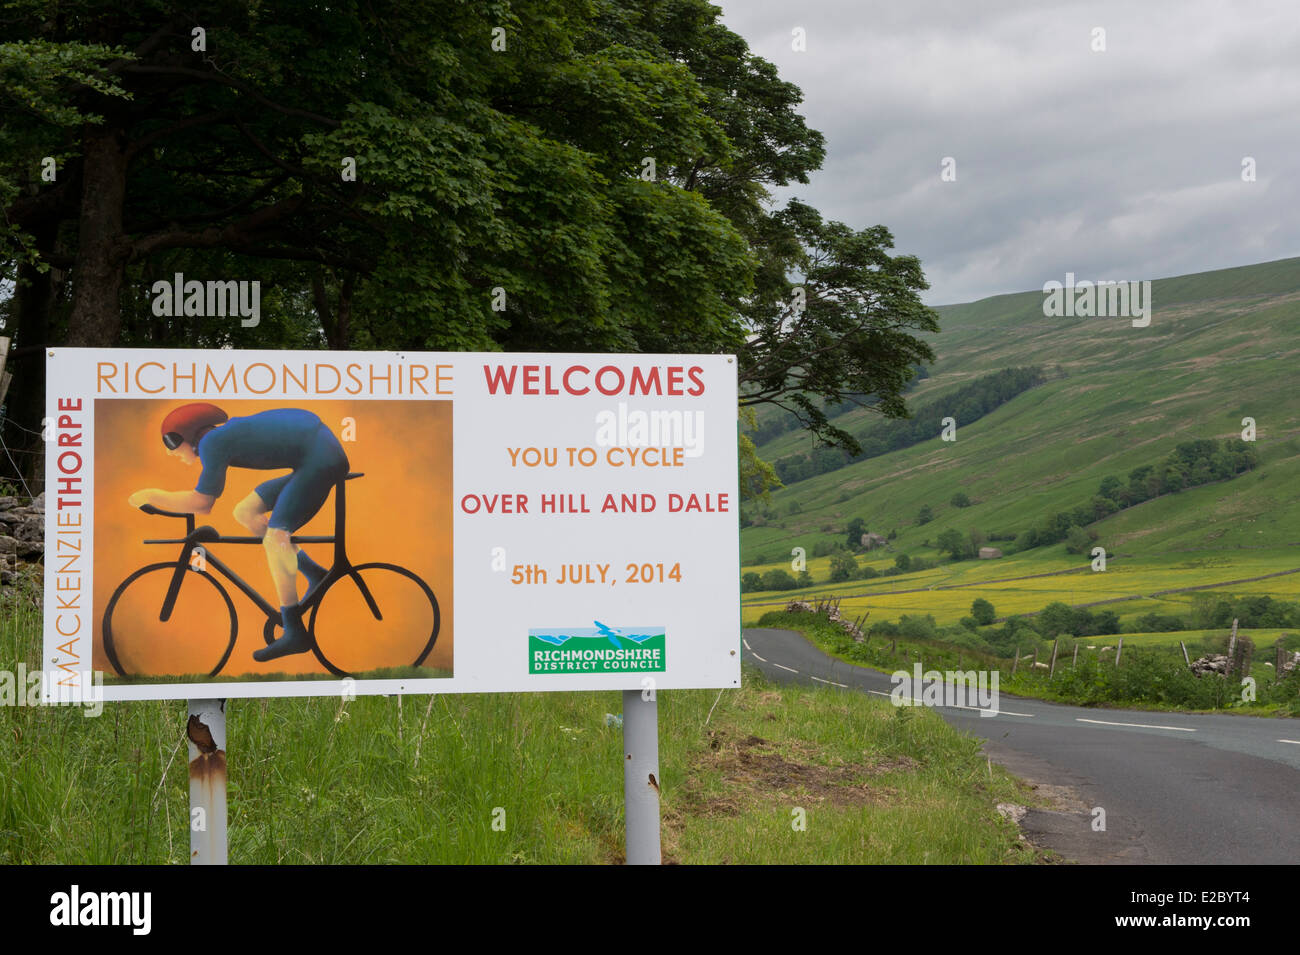 Richmondshire District Council boundary welcome sign (designed by artist Mackenzie Thorpe) with scenic countryside - Stock Image